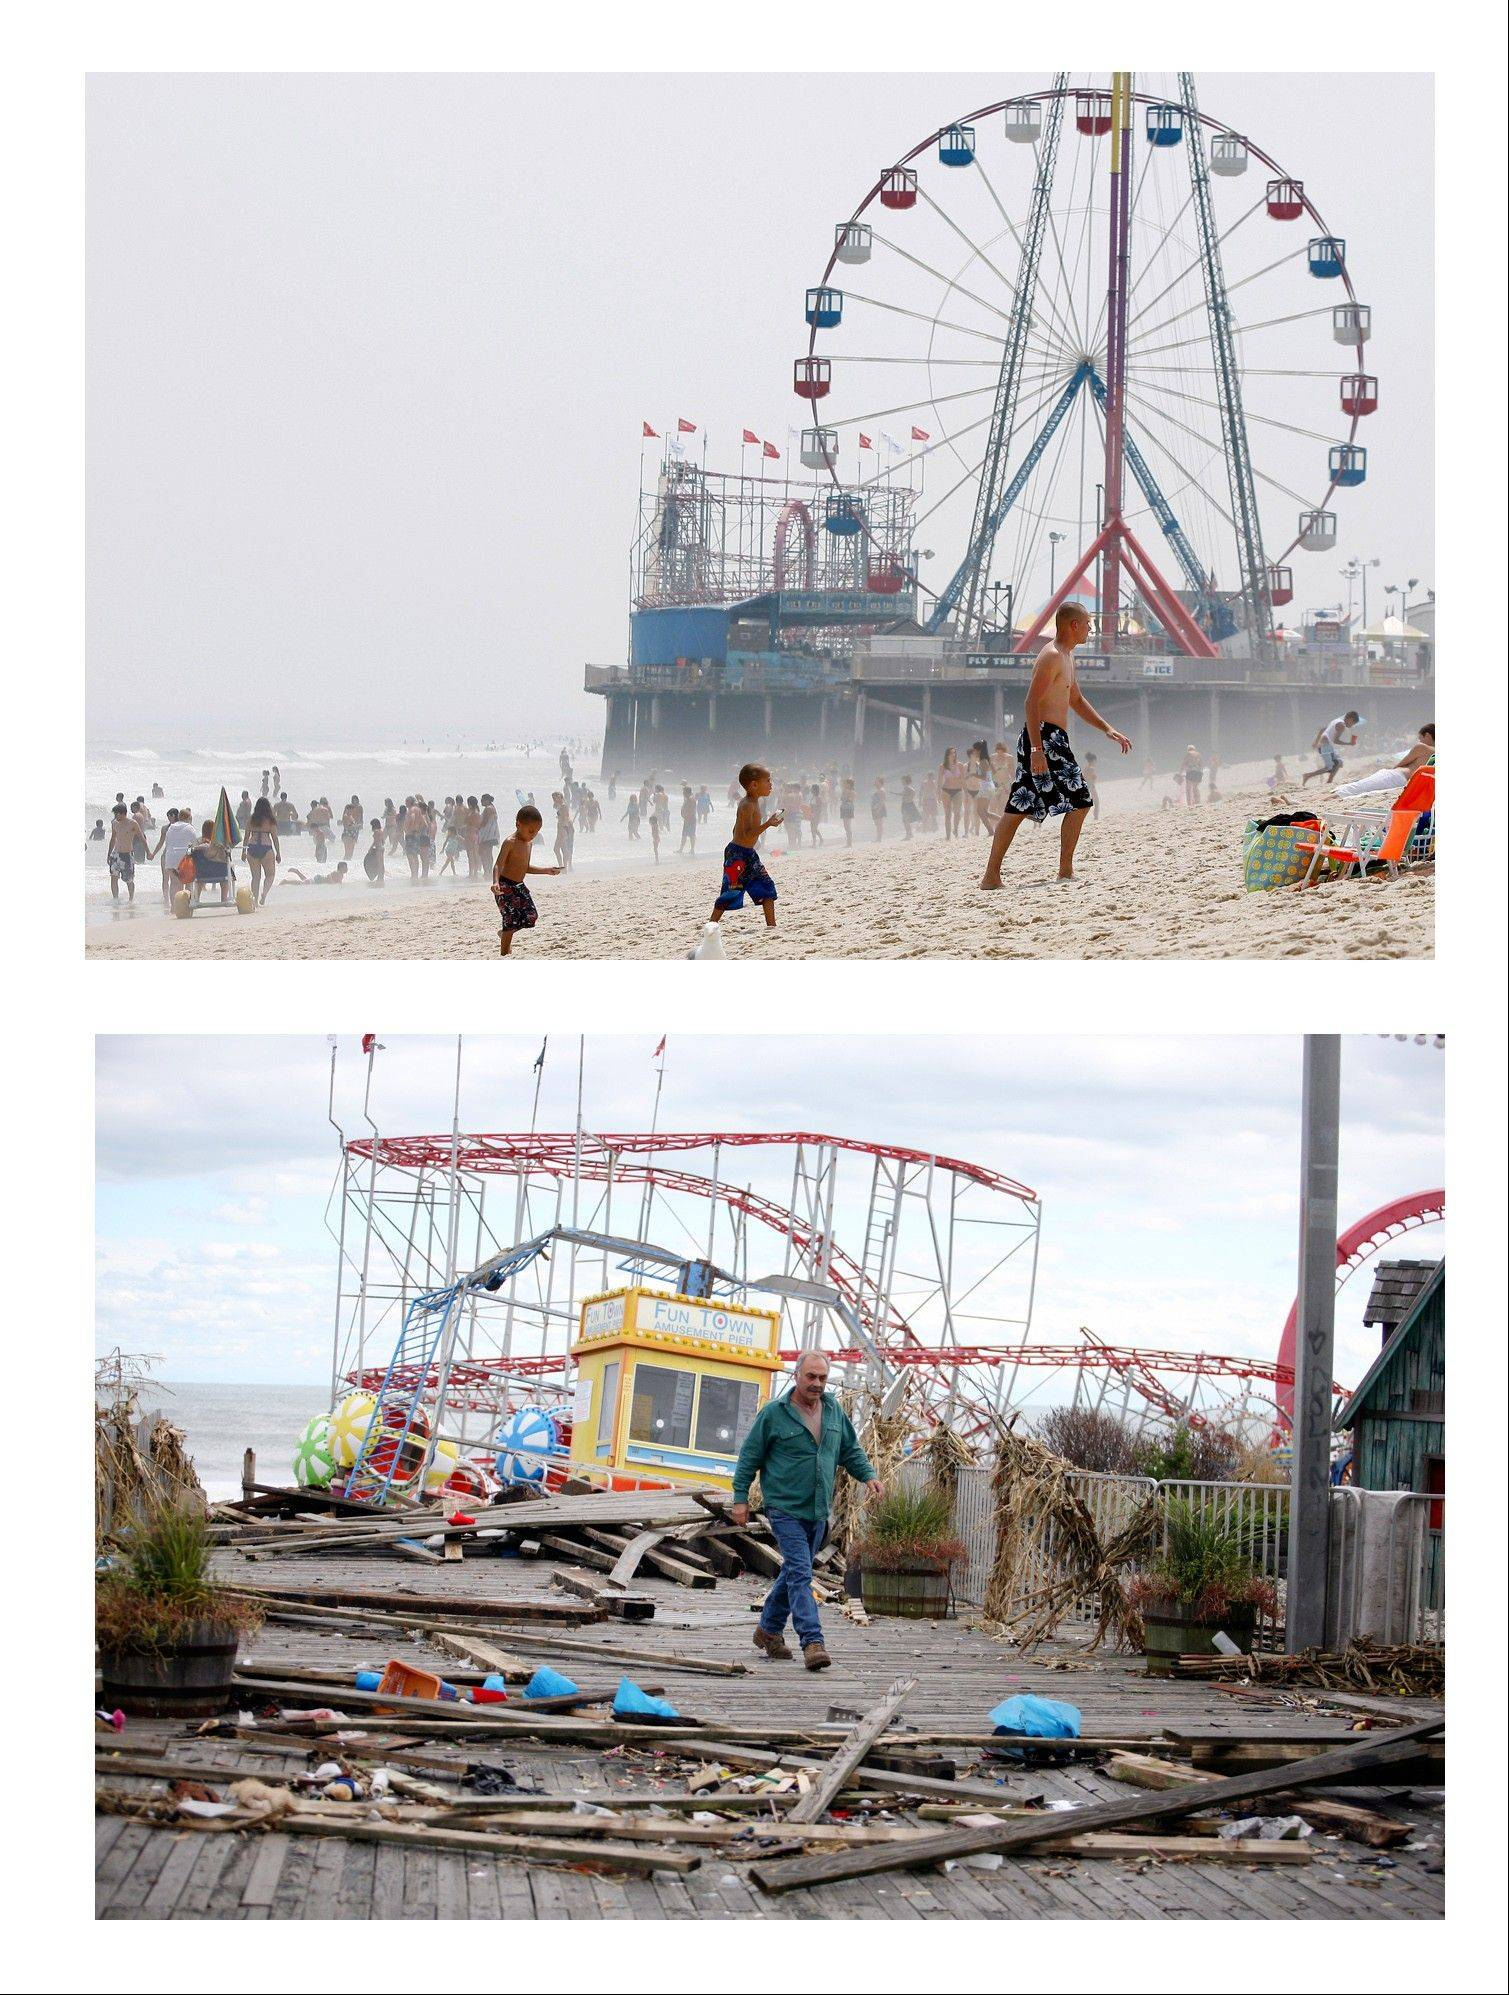 The Funtime Pier in Seaside Heights, N.J. is shown before and after superstorm Sandy made landfall on the Jersey Shore.